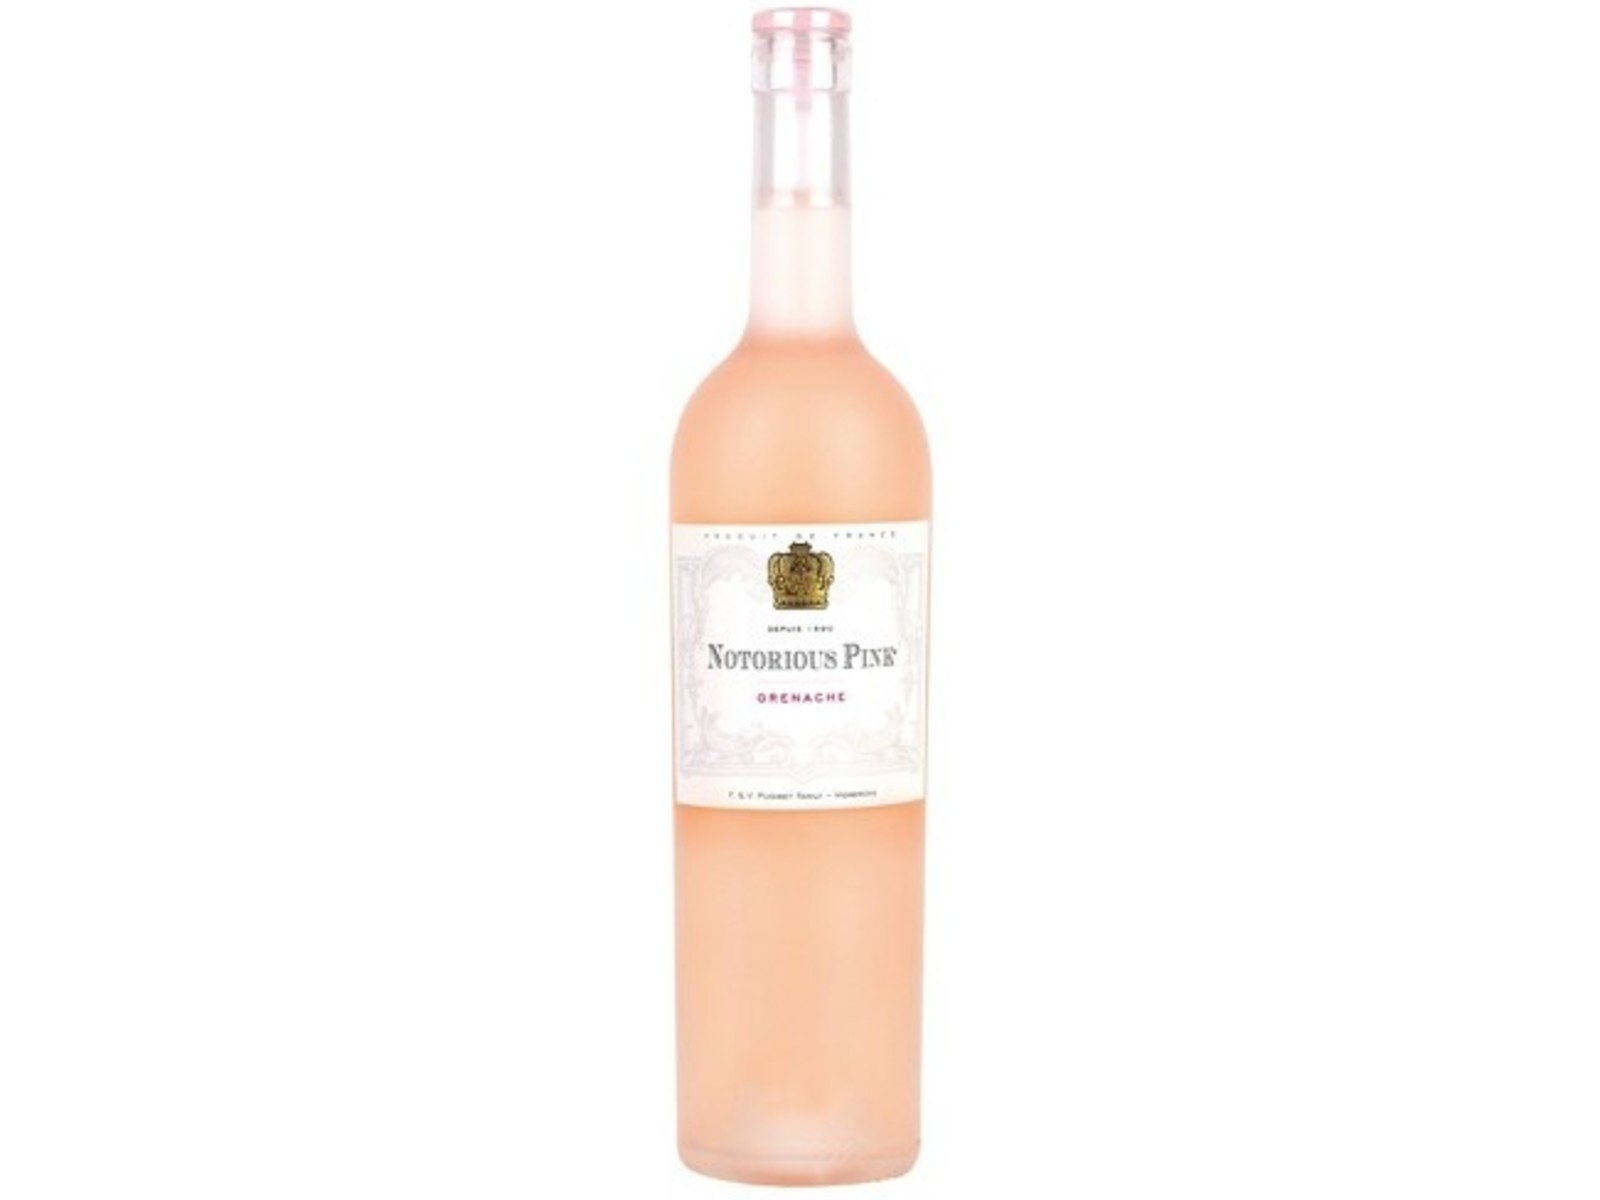 Notorious / Pink / Grenache Rose